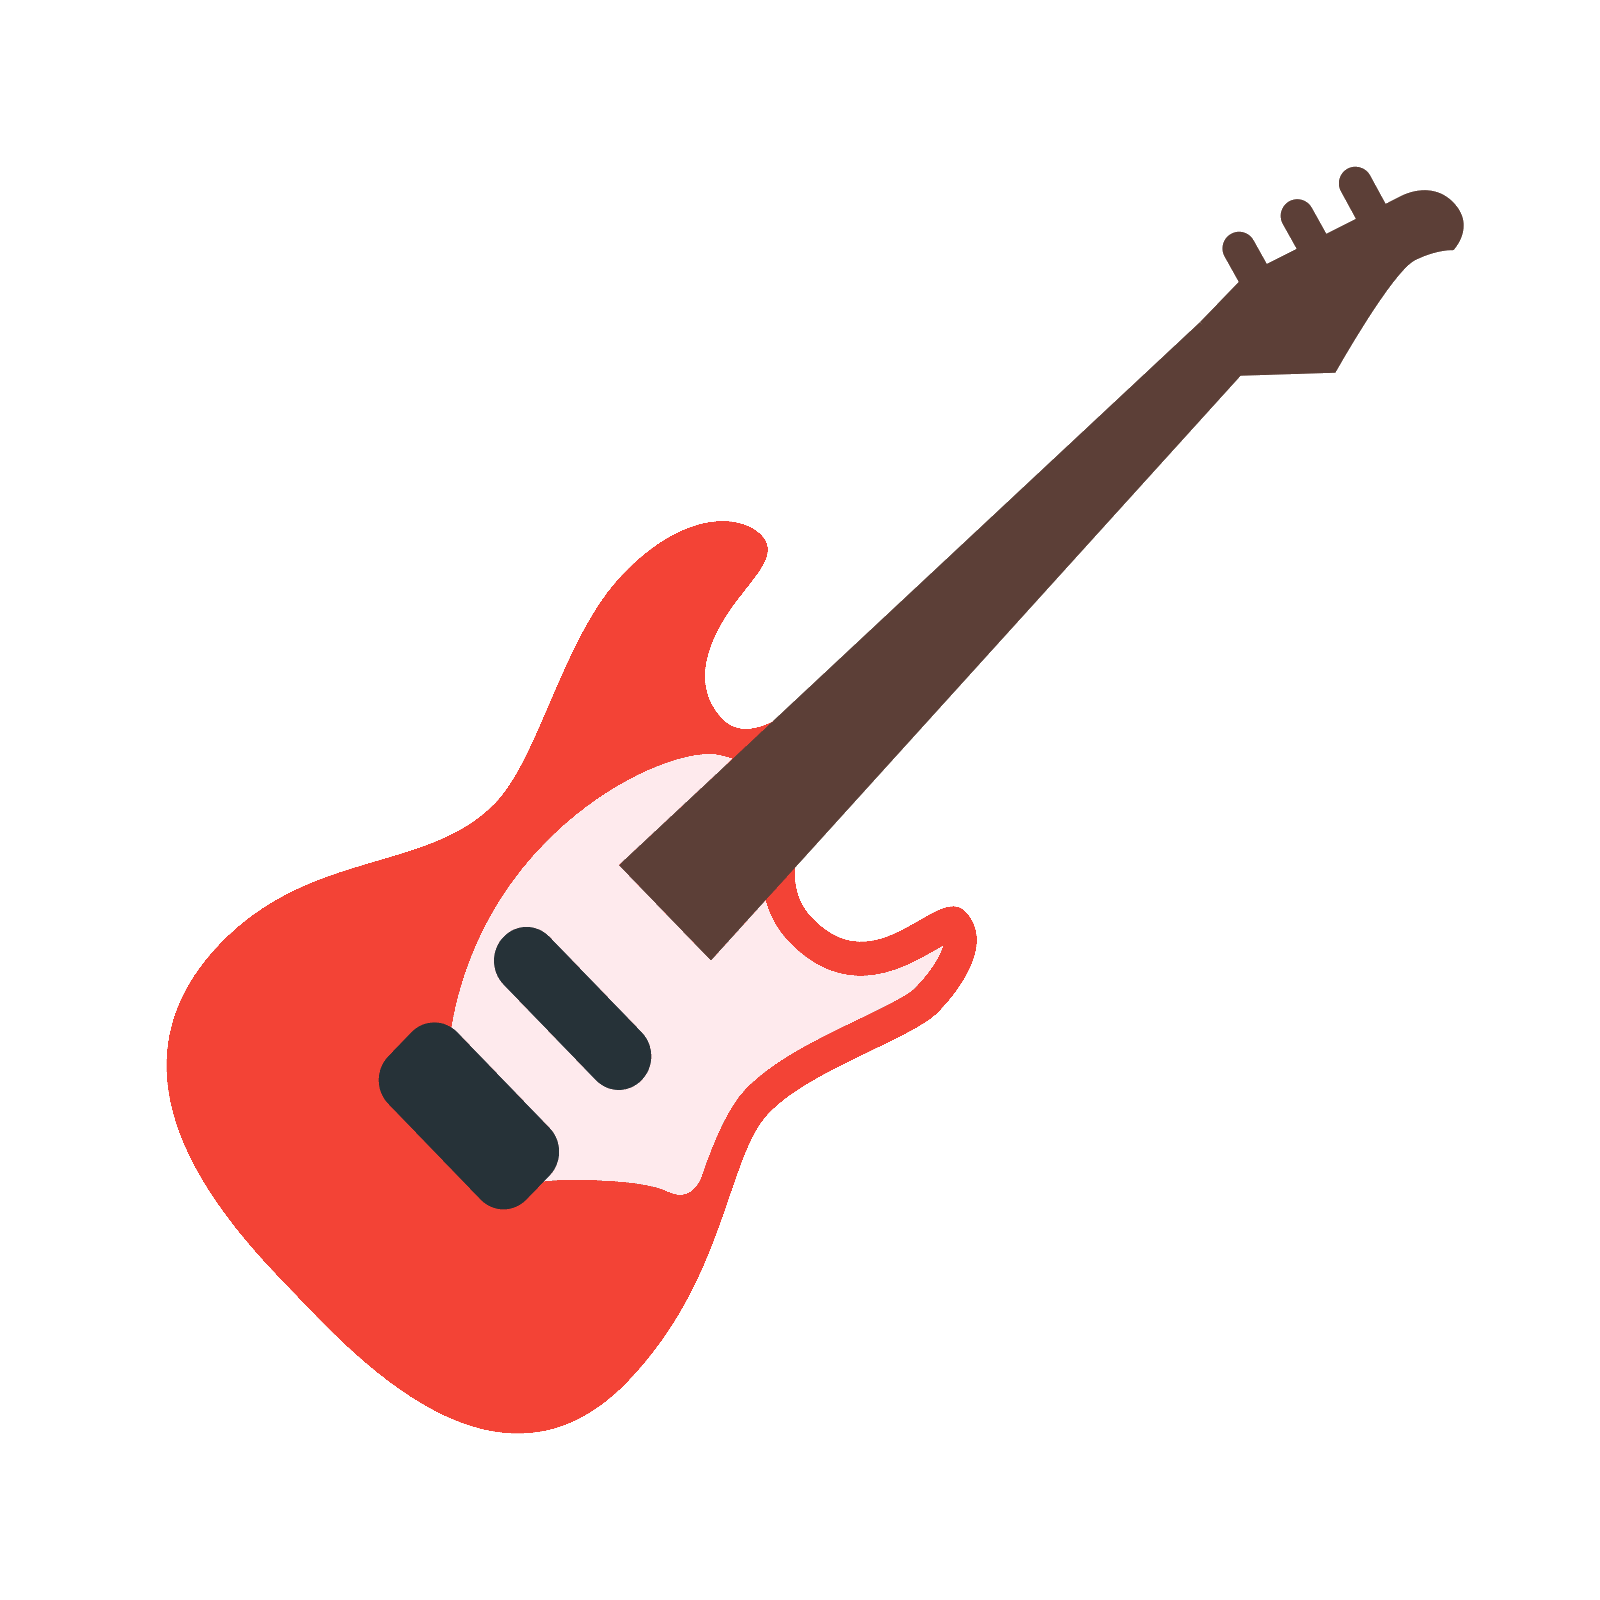 Rock computer icons transprent. Musician clipart classic music